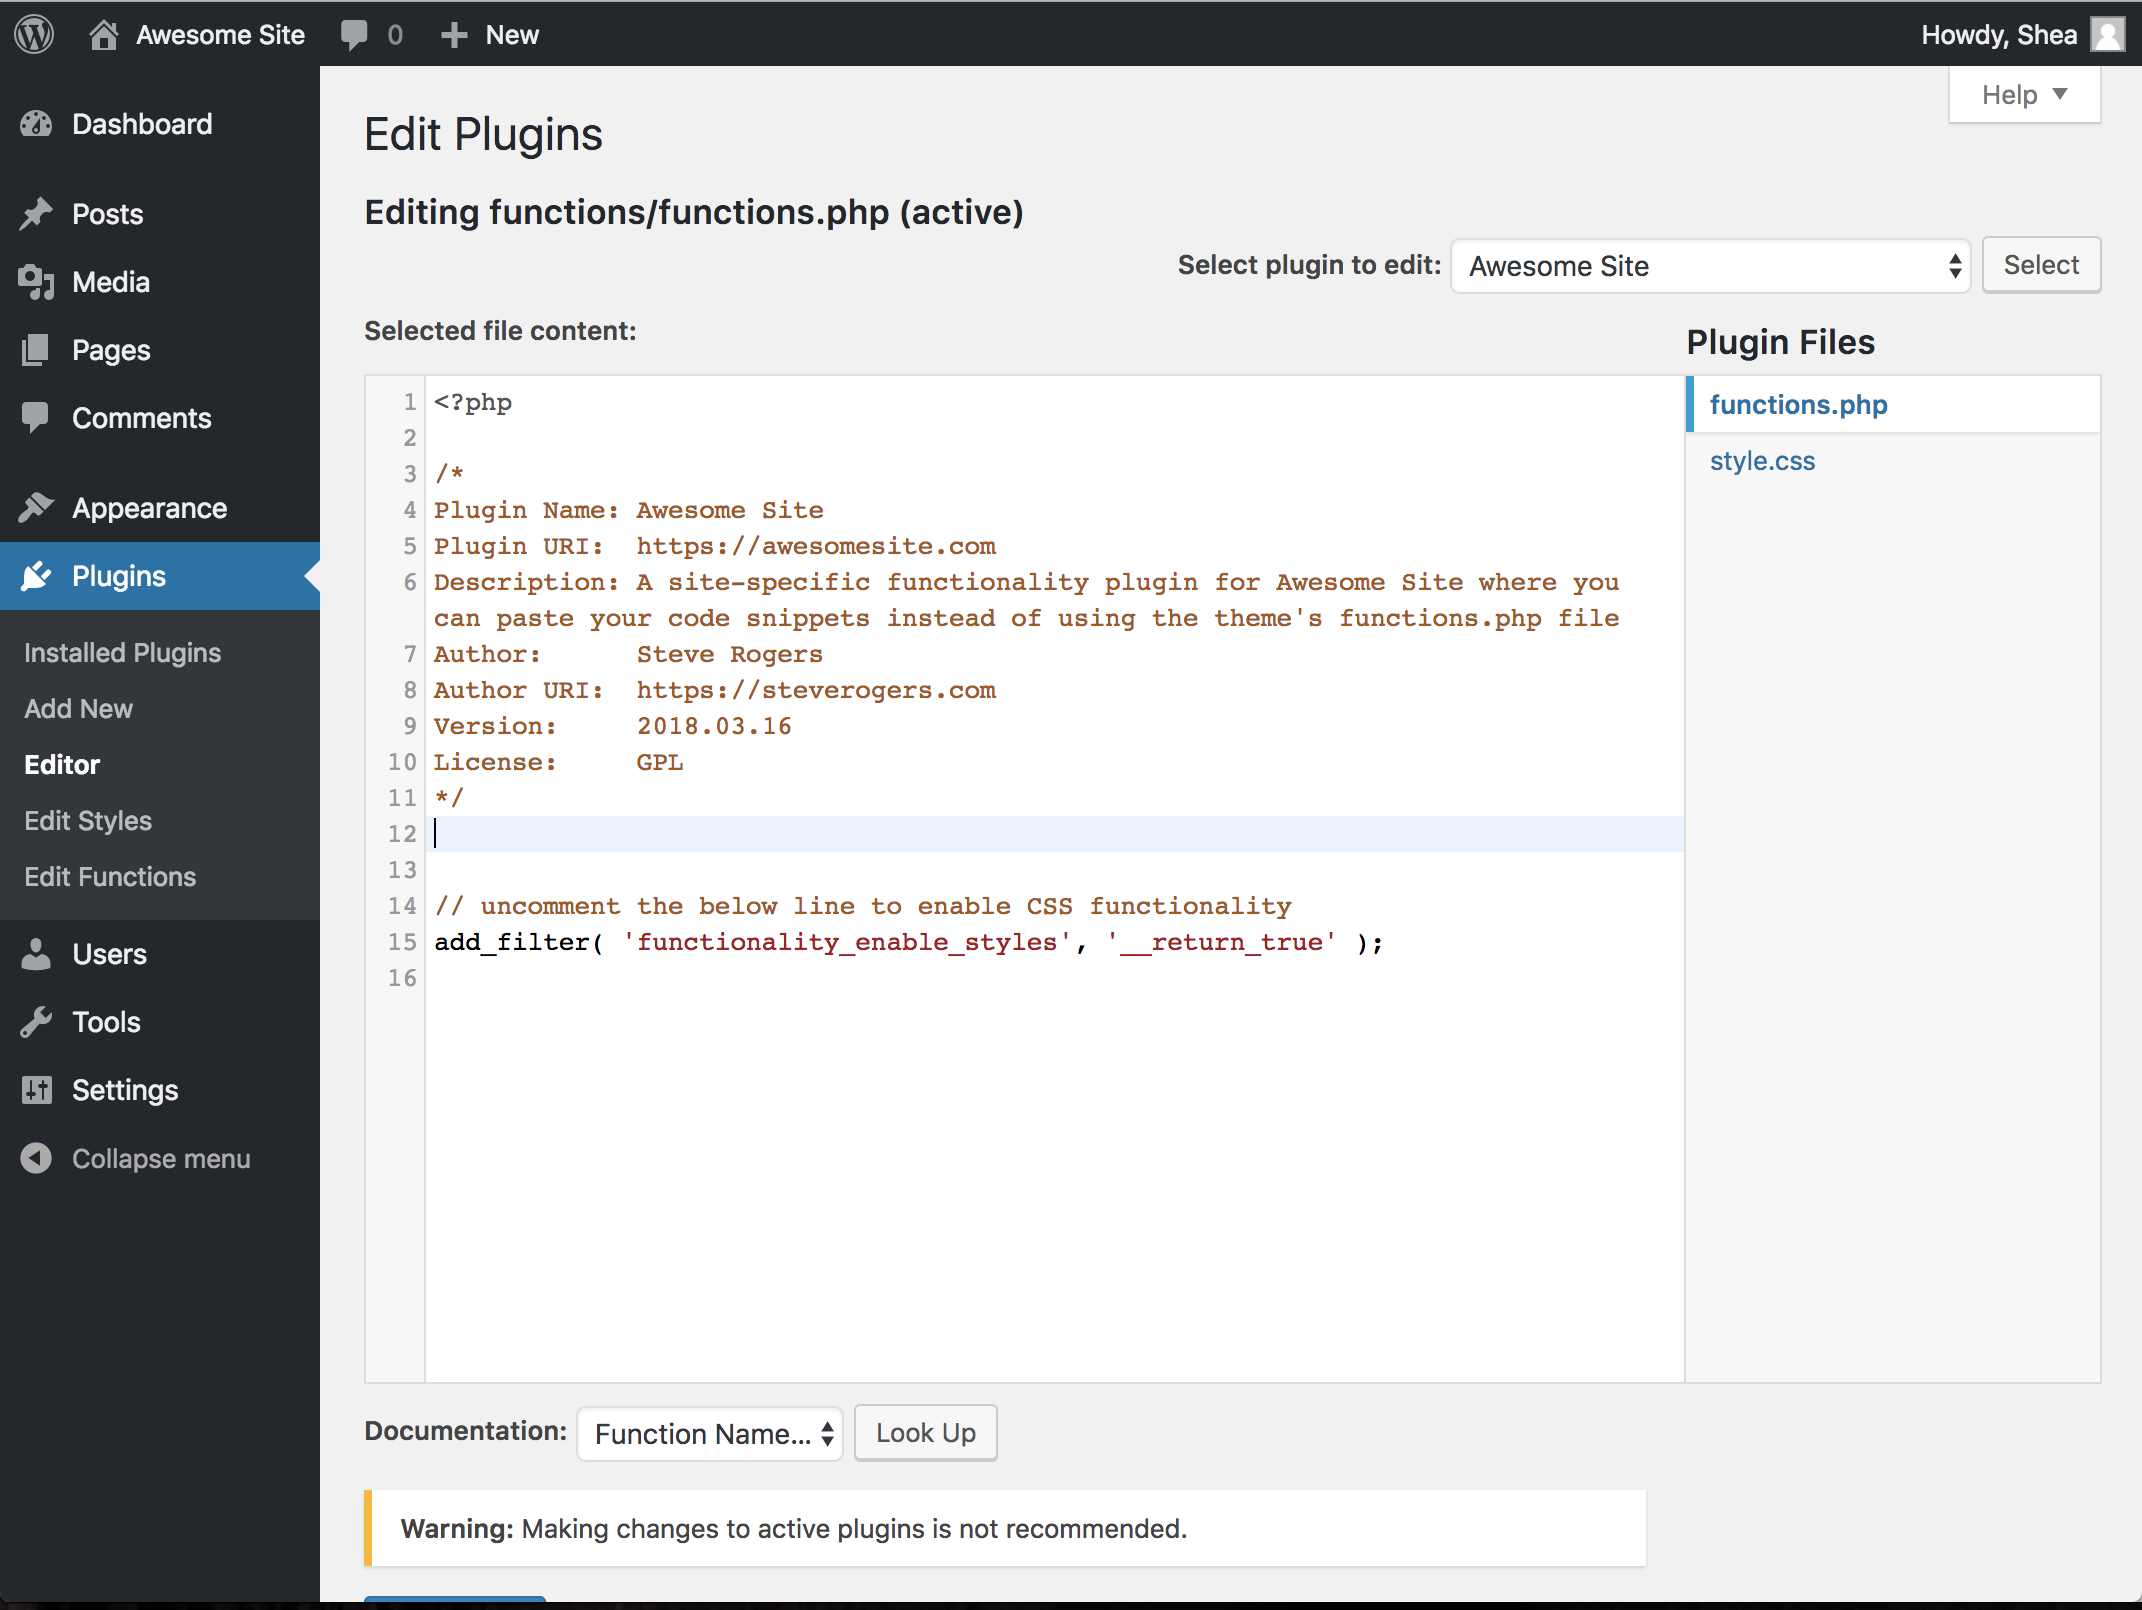 Editing the functionality plugin in the WordPress plugin editor